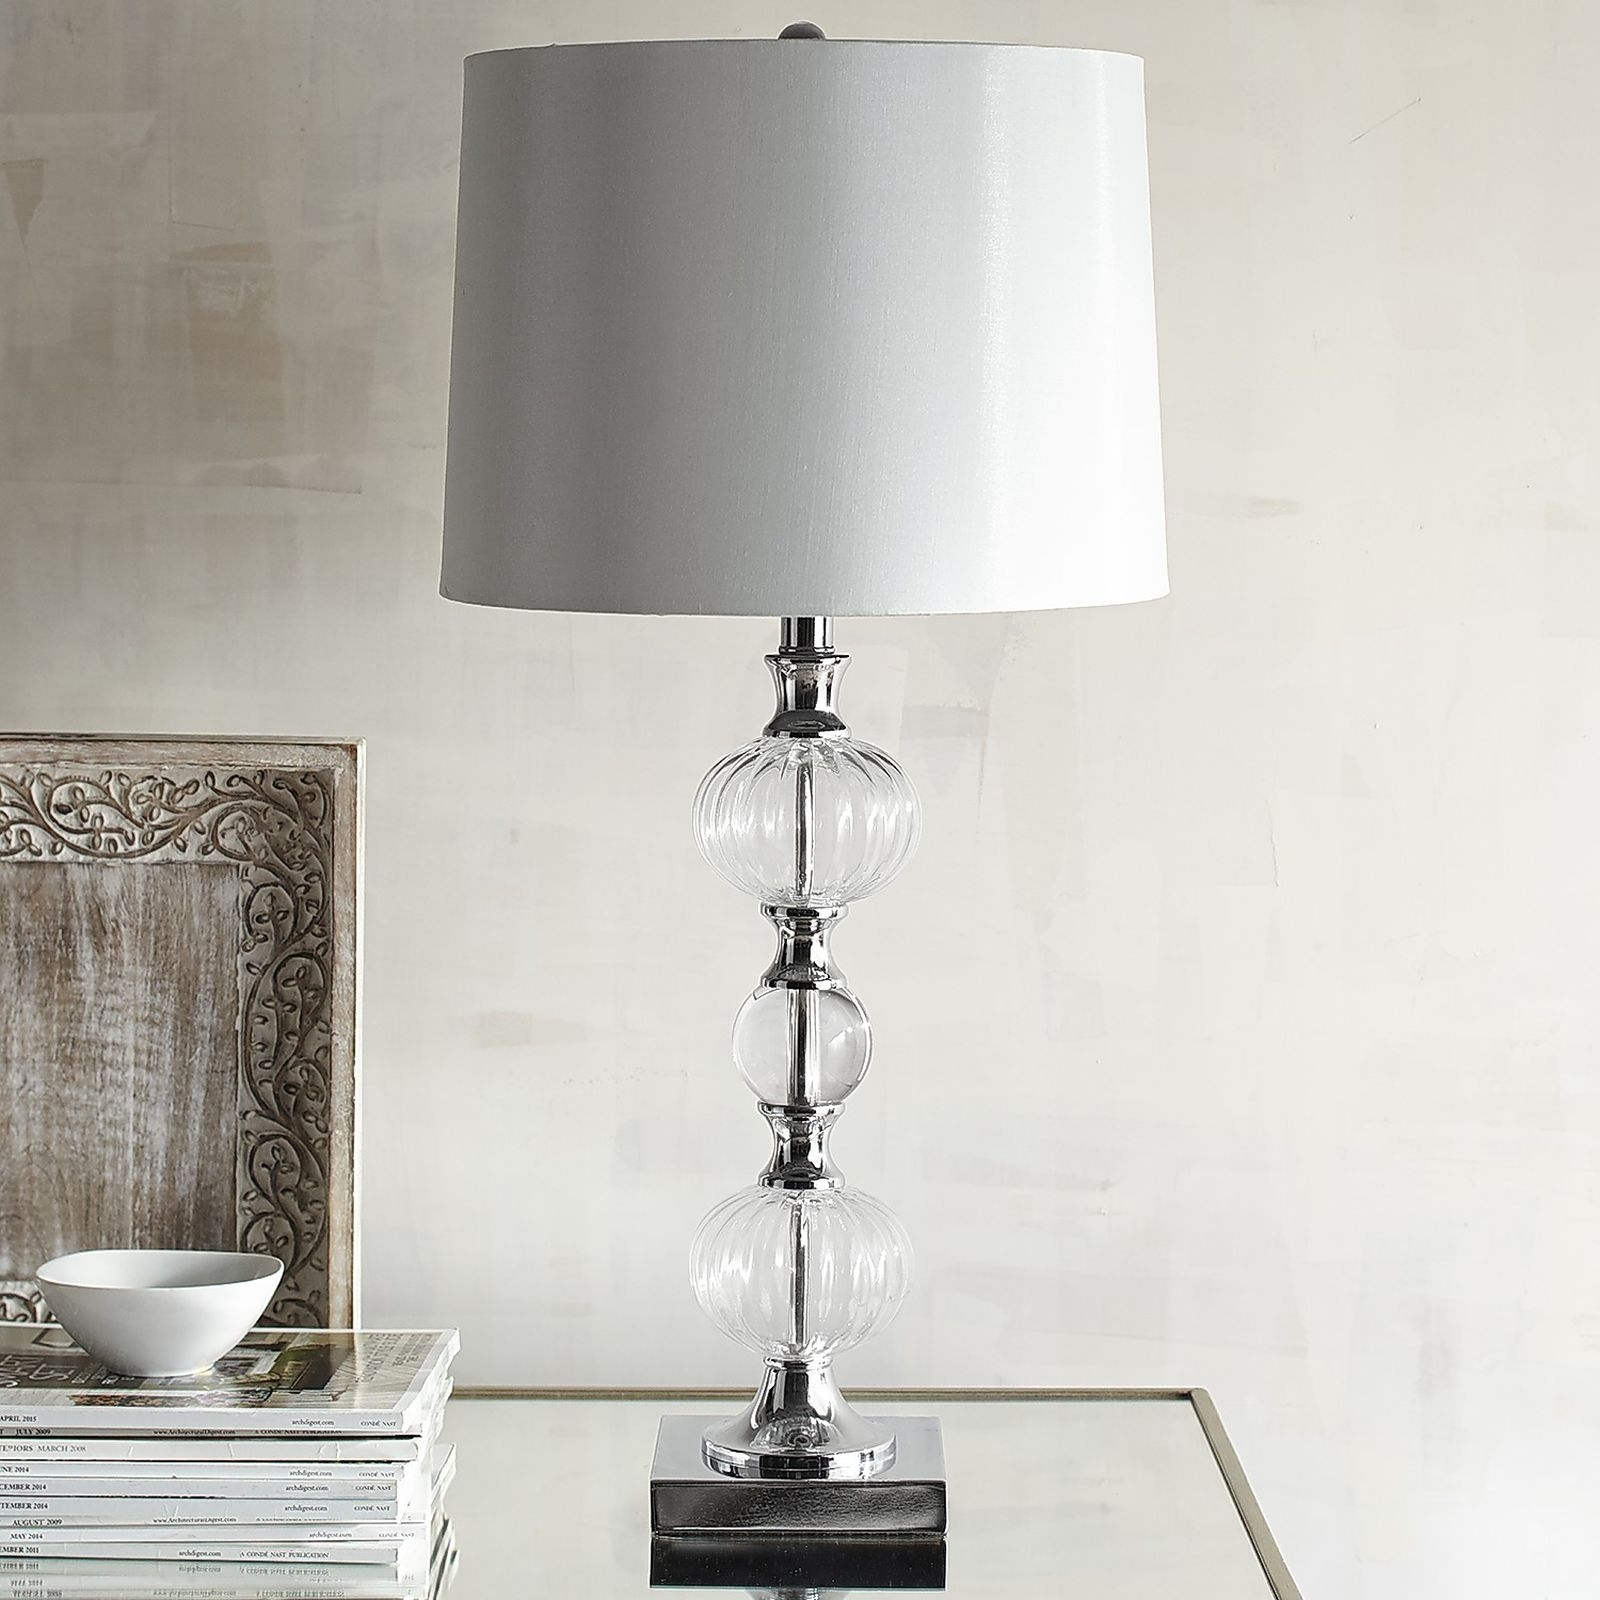 Inspiration about 55 Most Blue Chip Chrome Table Lamp Tall Lamps For Living Room White Throughout Clear Table Lamps For Living Room (#5 of 15)